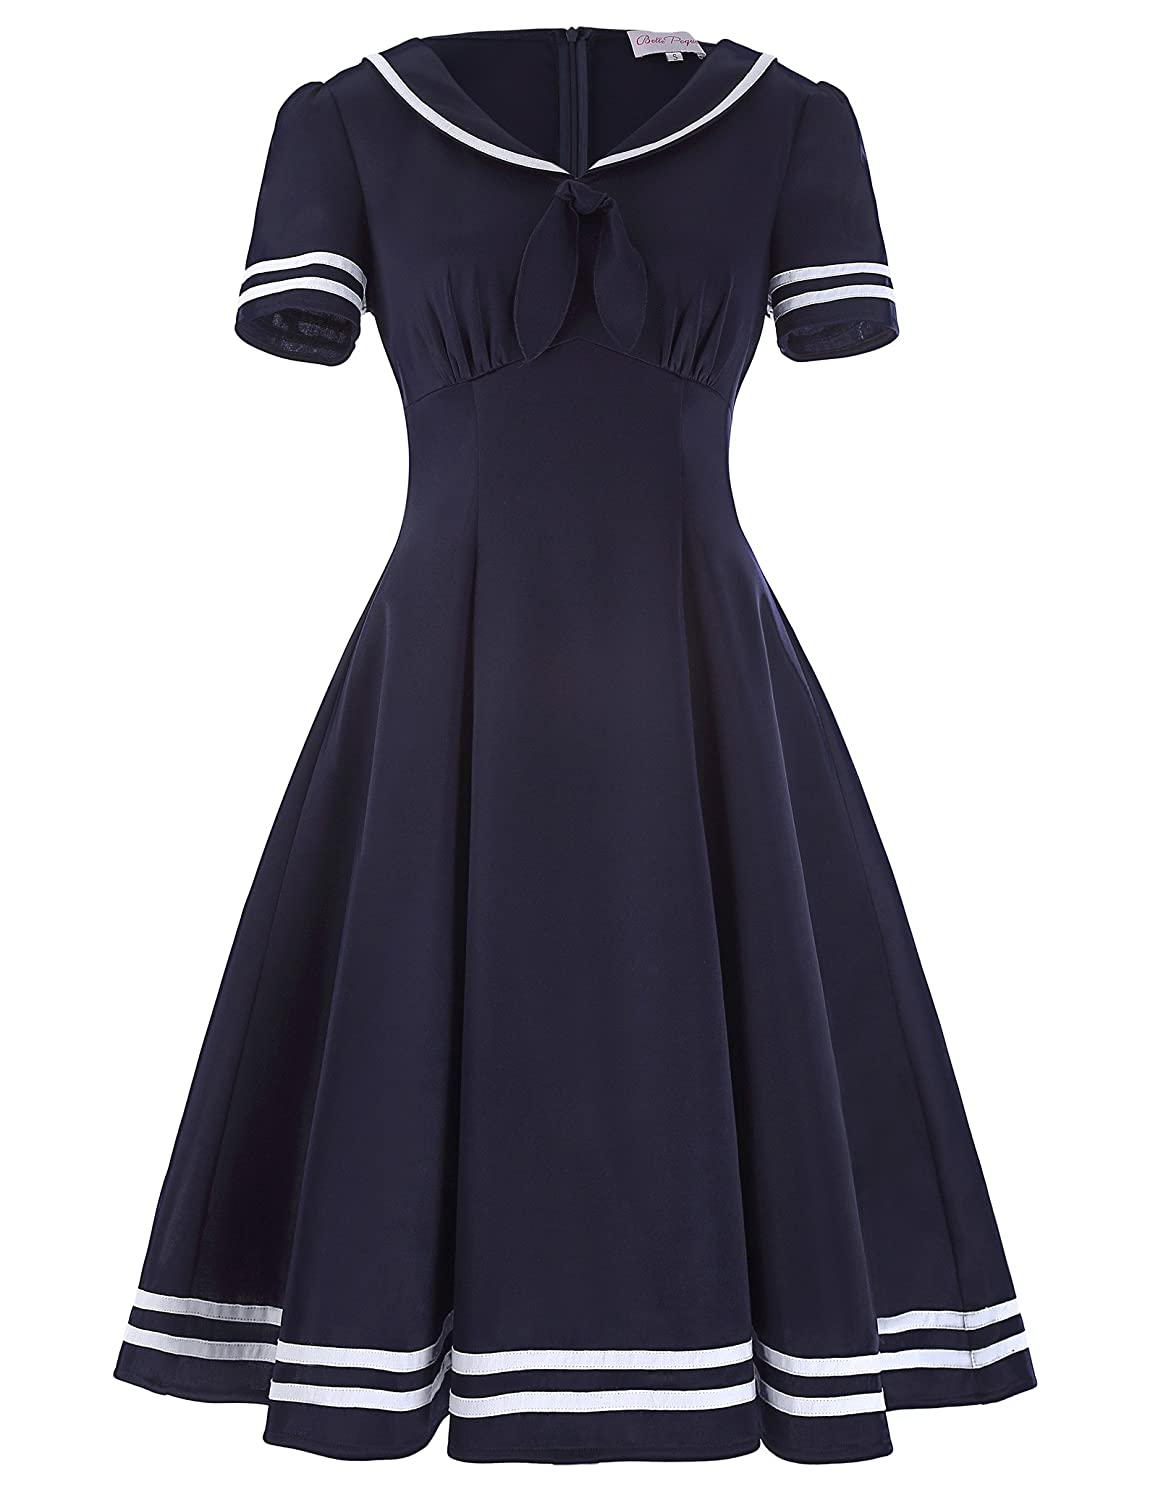 1940s Tea Dresses, Mature, Mrs. Long Sleeve Dresses Belle Poque Womens Retro Sailor Dress Short Sleeve Cocktail Party Swing Dress $29.99 AT vintagedancer.com